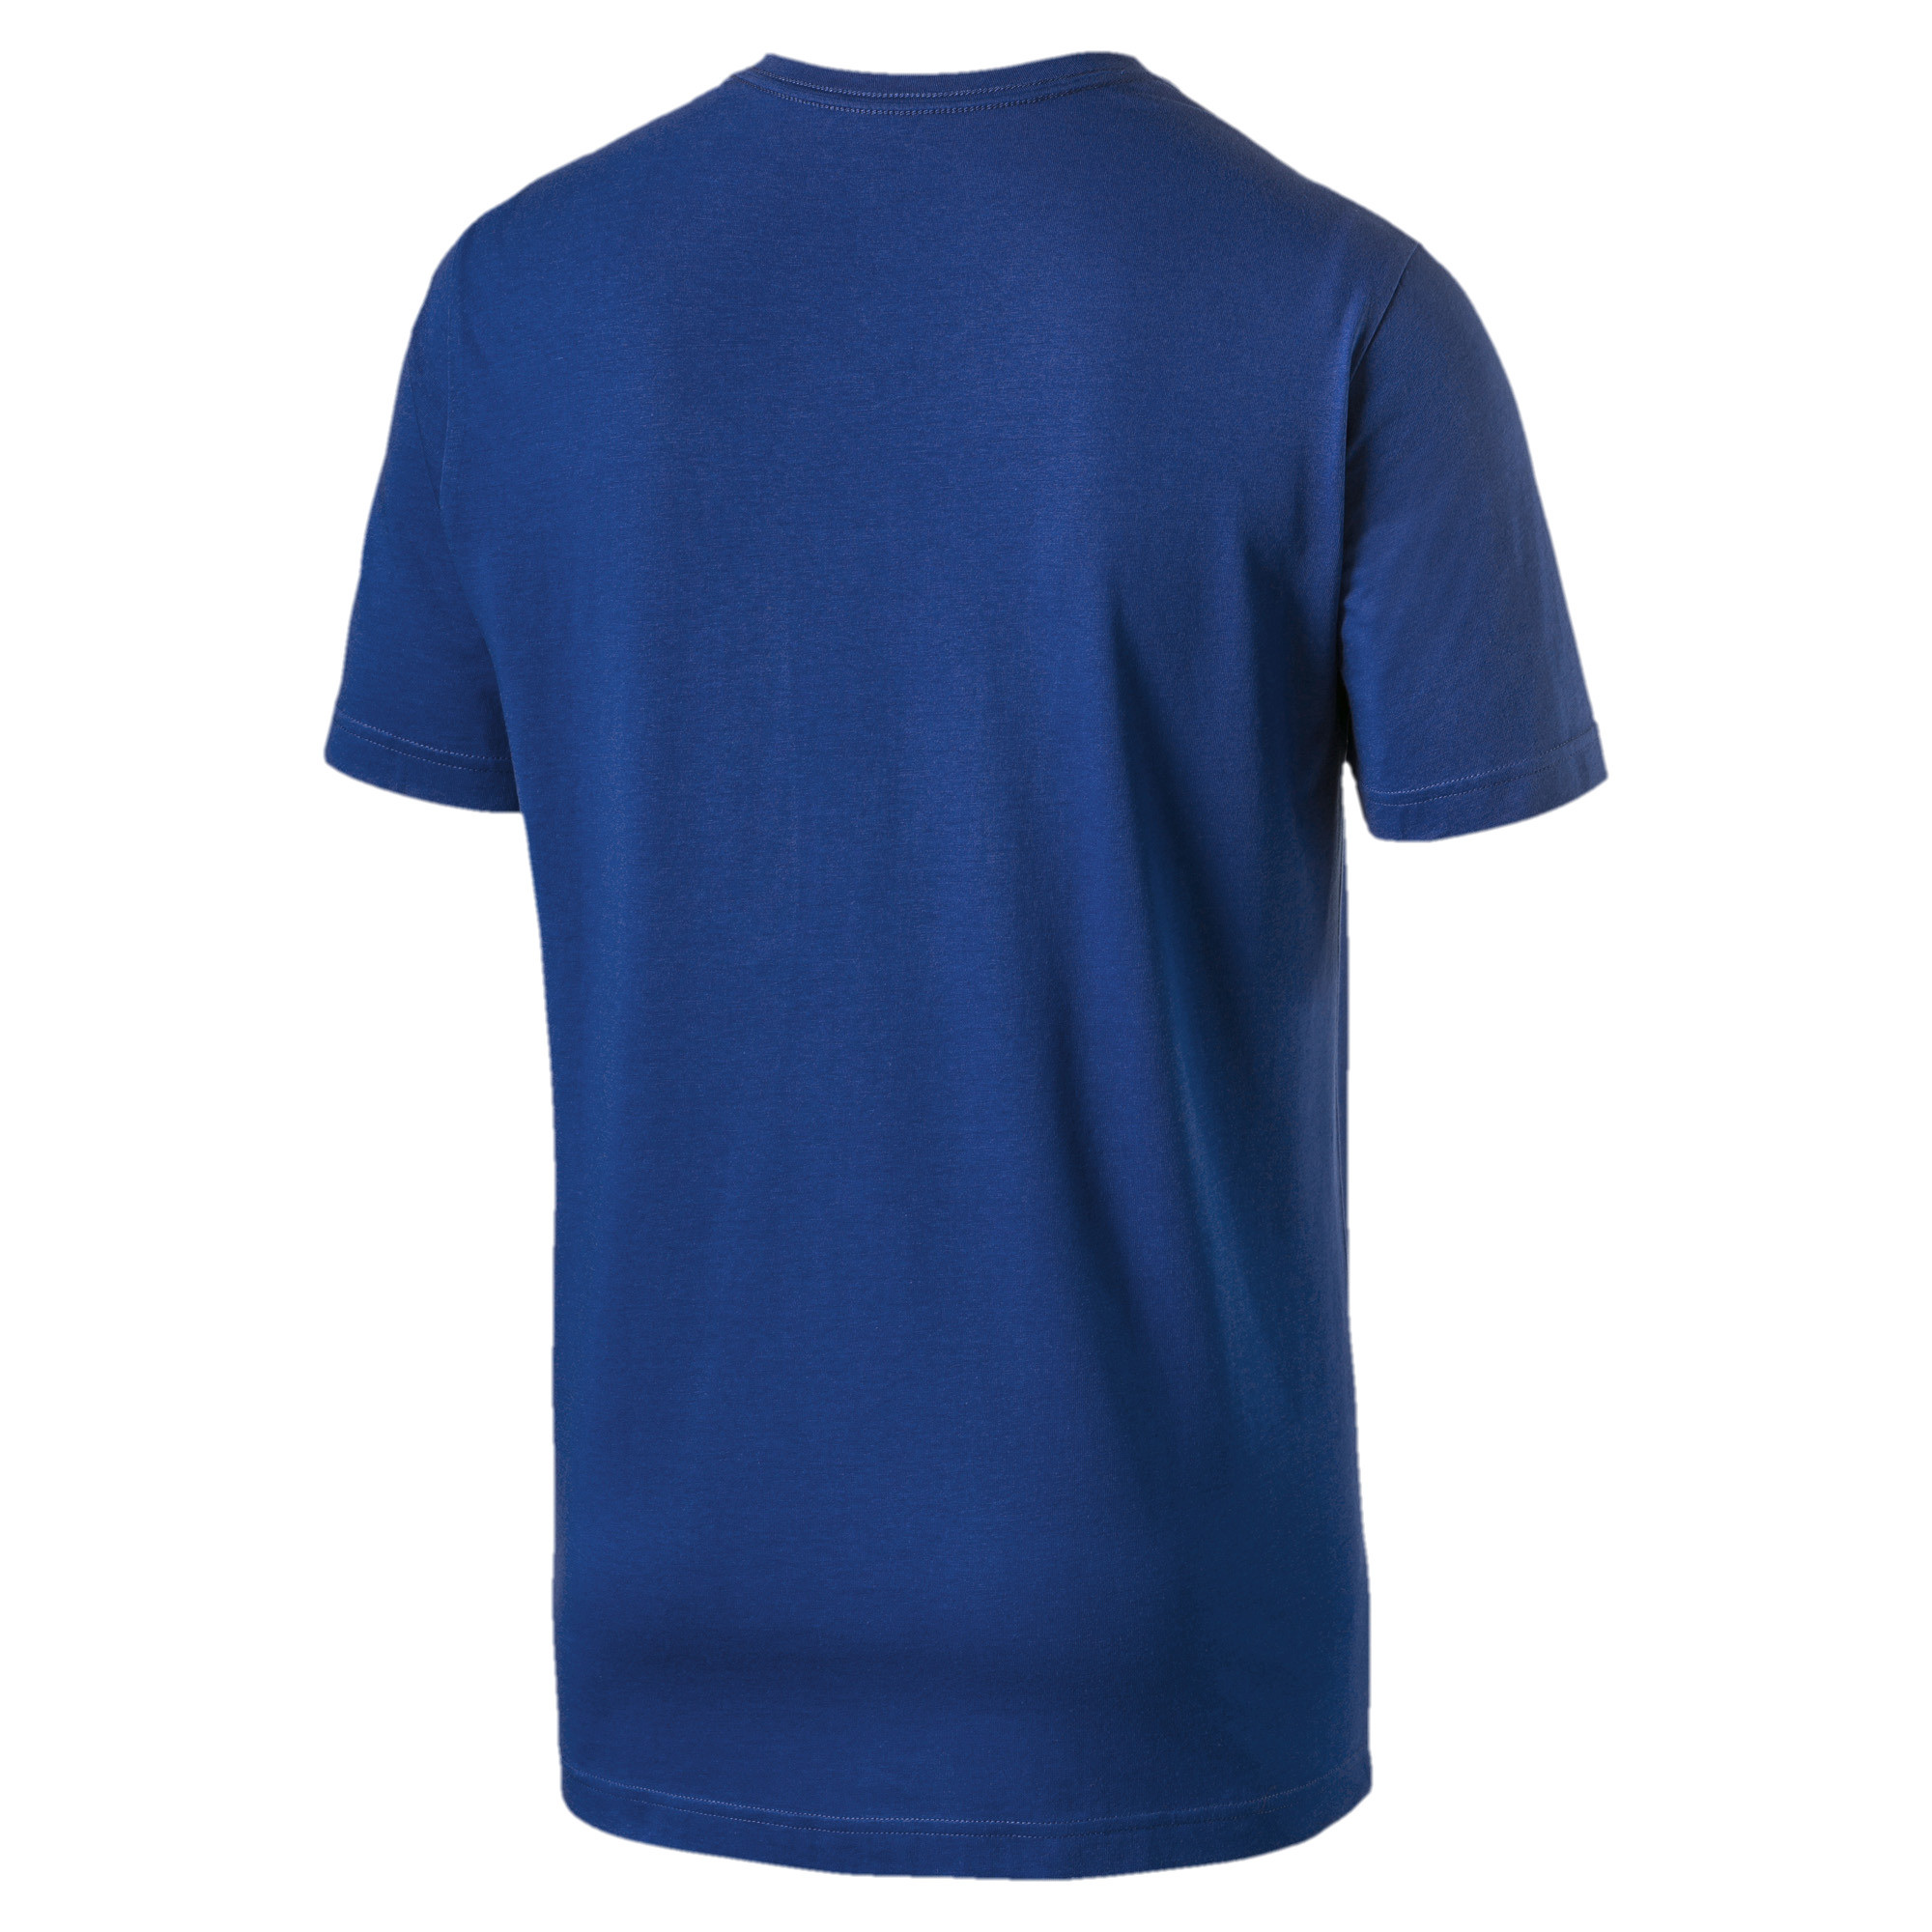 PUMA-Essentials-Men-039-s-V-Neck-Tee-Men-Tee-Basics thumbnail 23